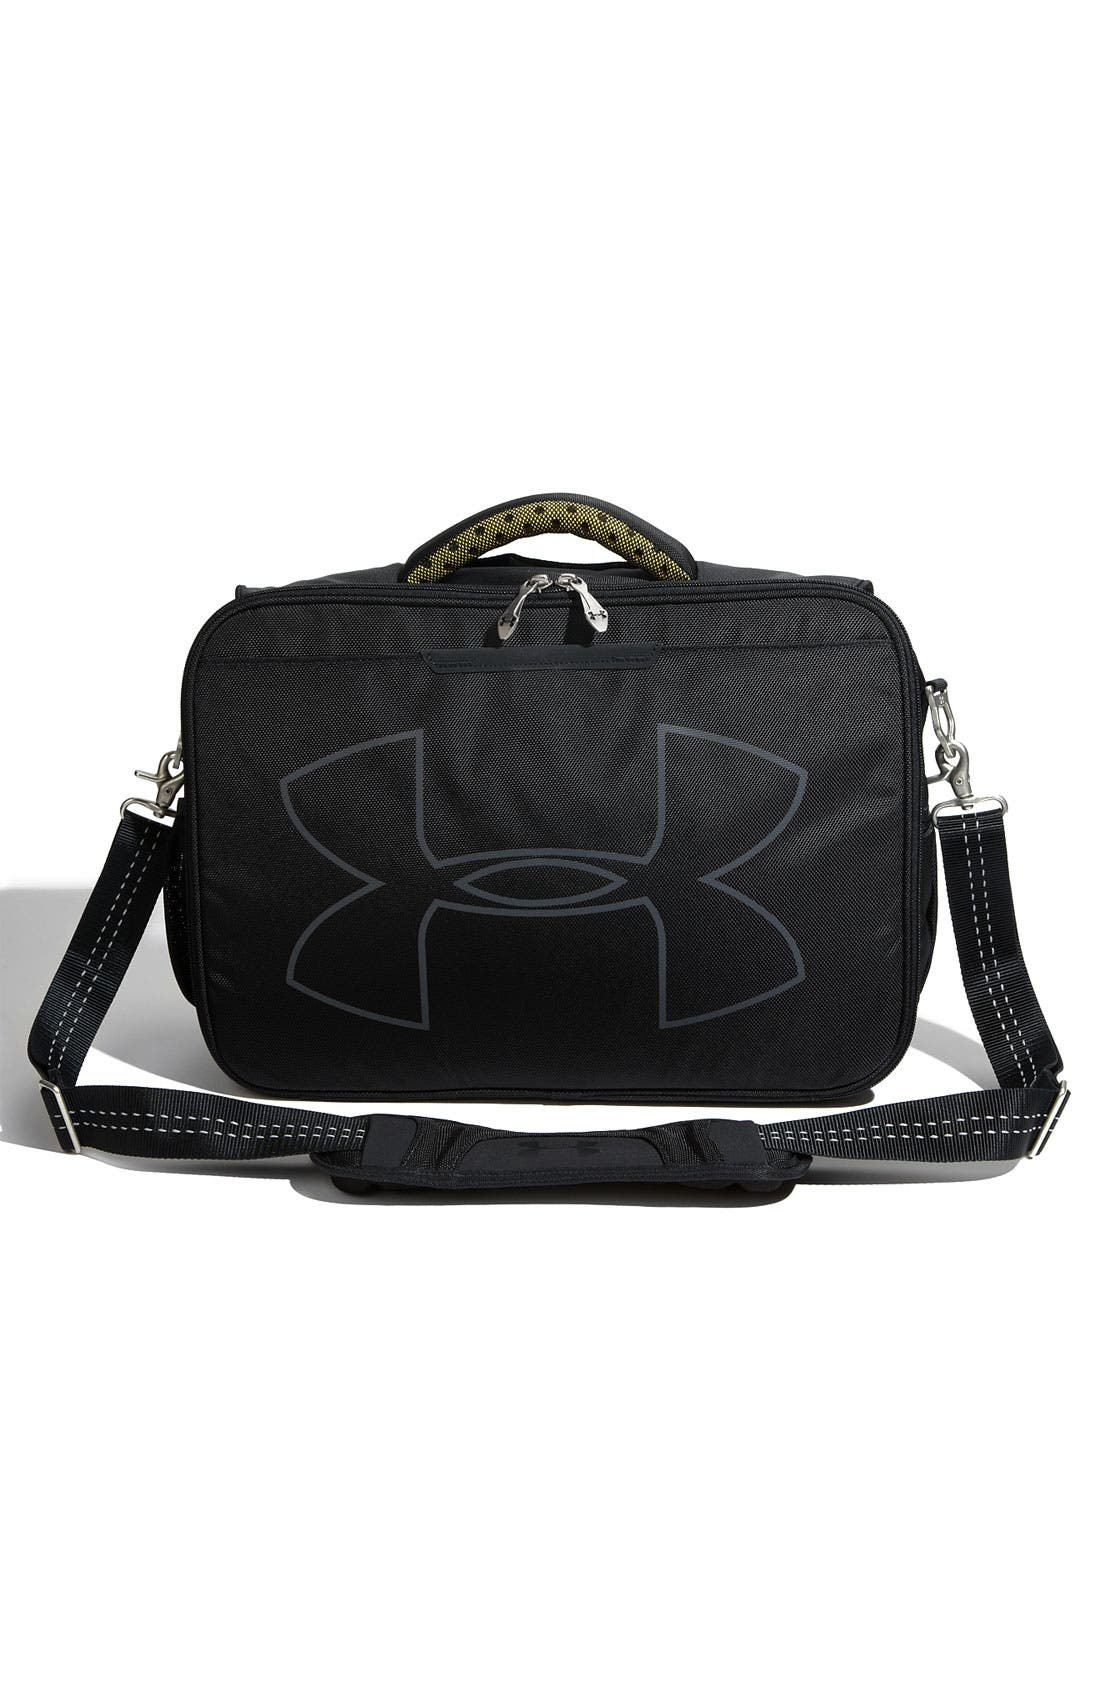 Alternate Image 1 Selected - Under Armour 'Victory' Briefcase